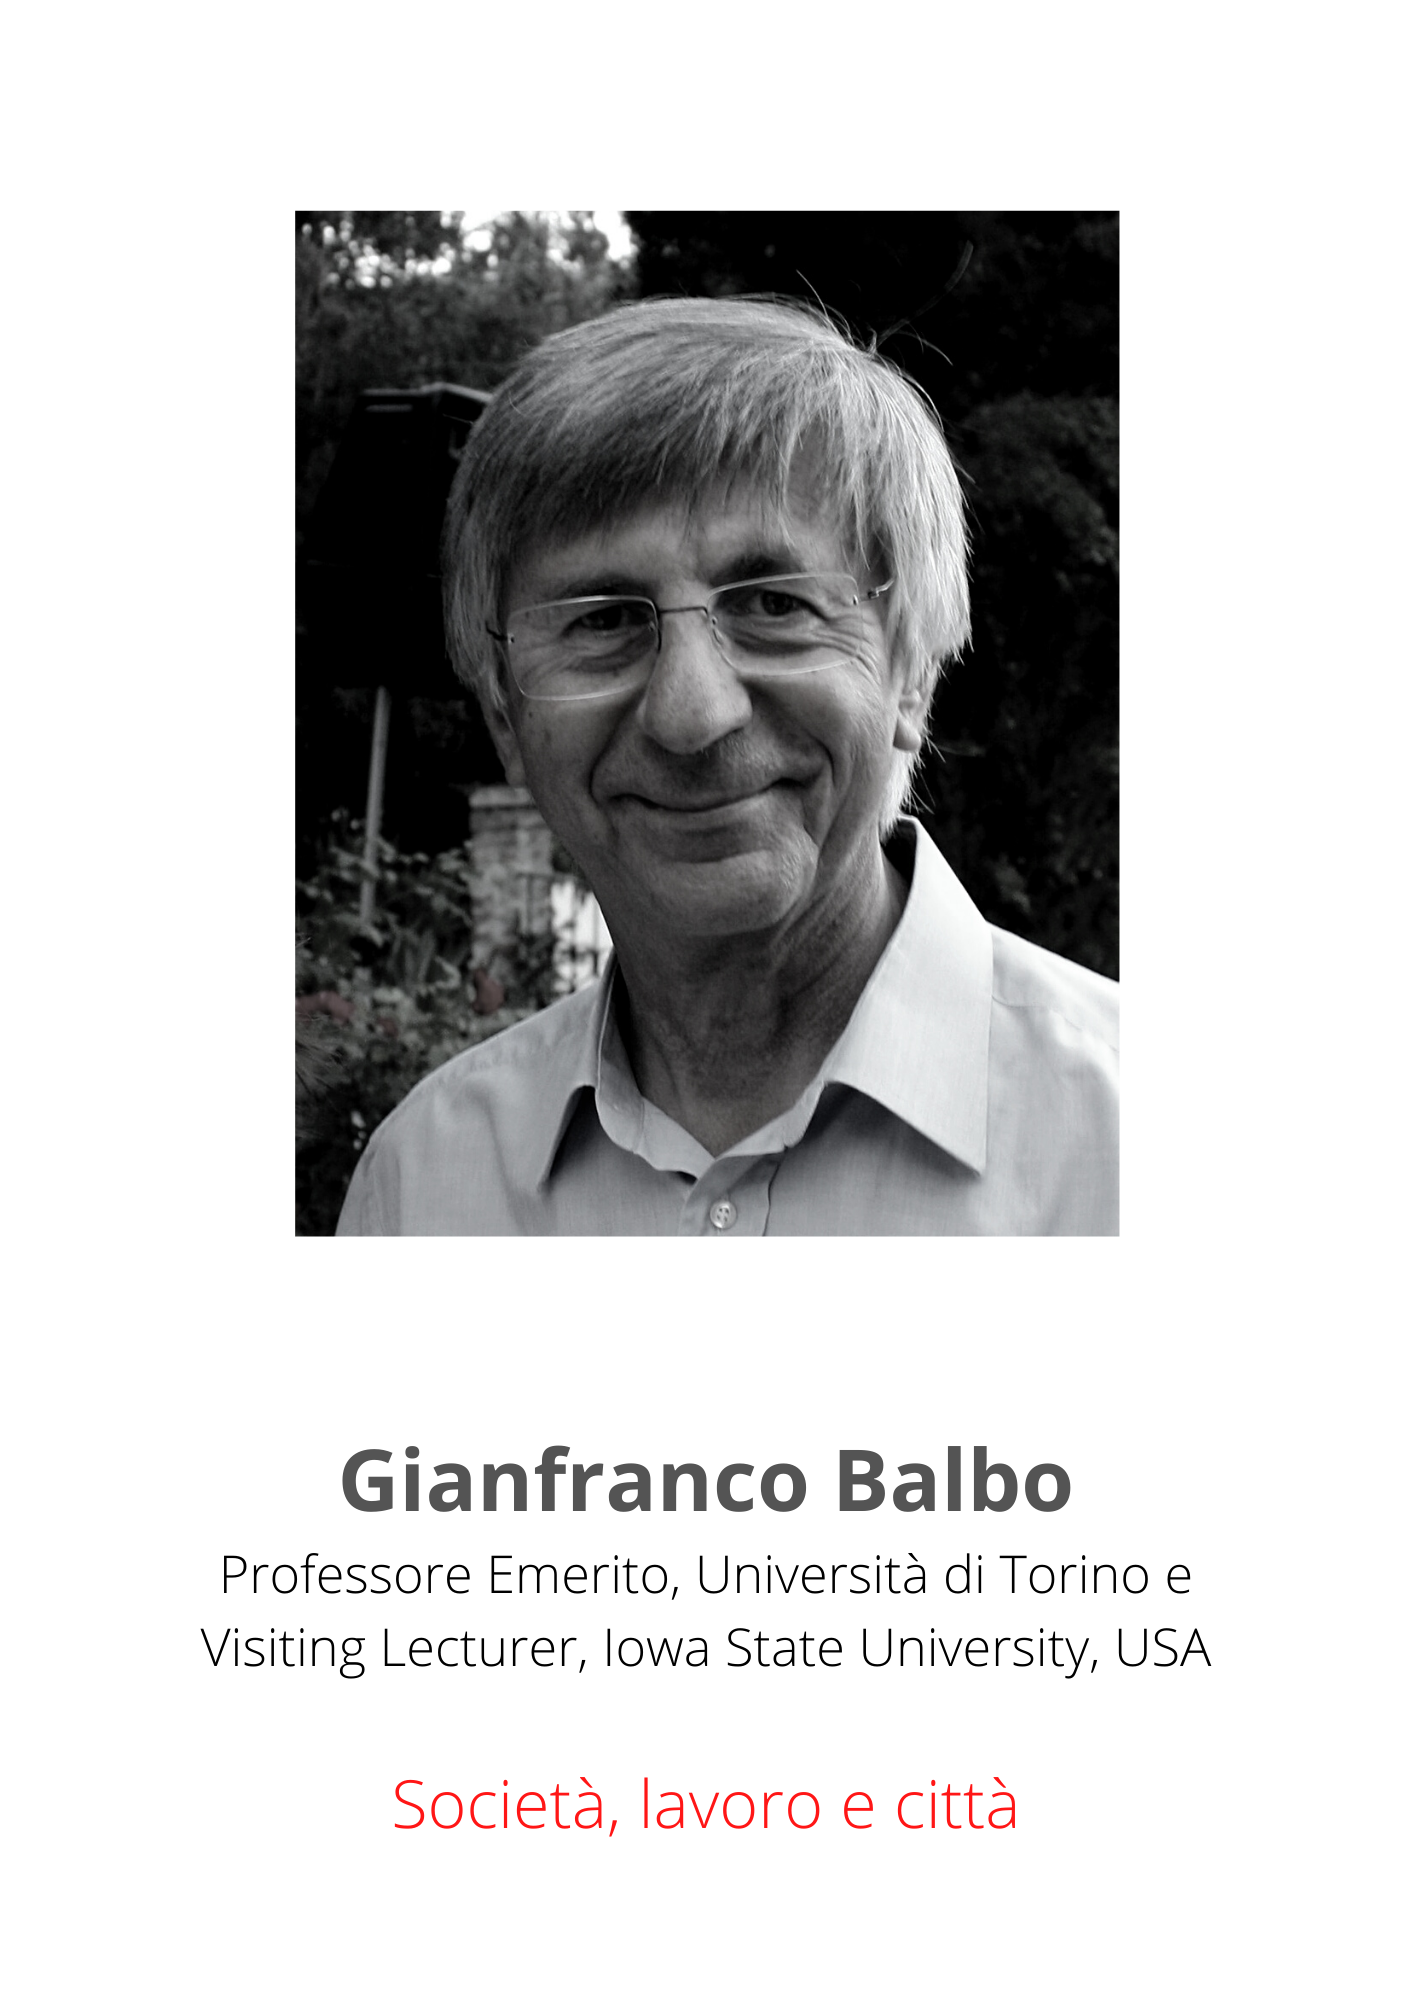 Gianfranco Balbo